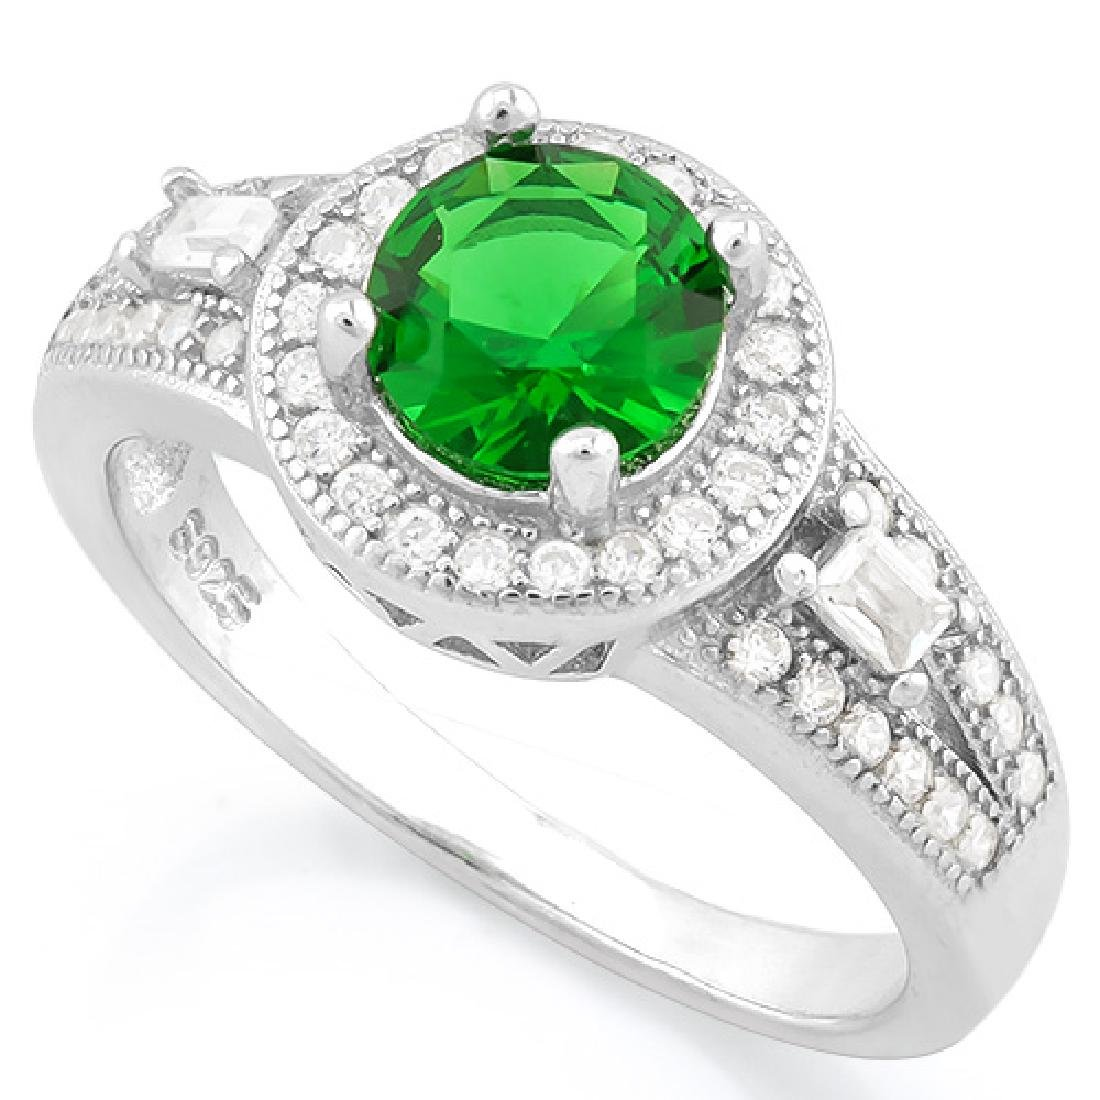 1 CARAT CREATED EMERALD 925 STERLING SILVER HALO RING